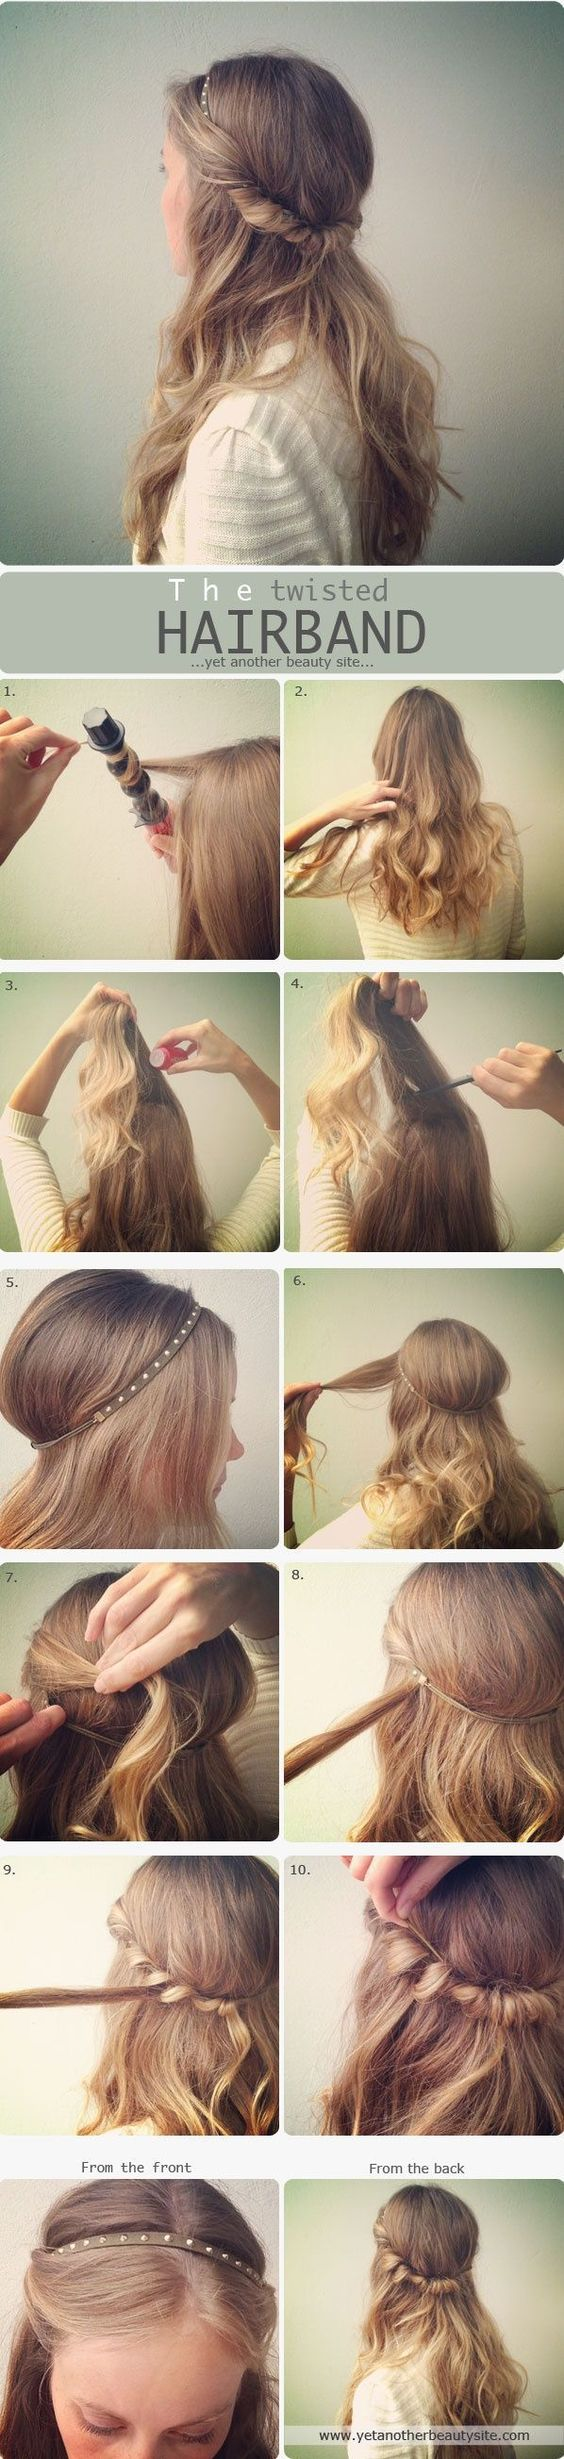 easy hairstyle of the twisted hairband Women s Fashion easy hairstyles | hairstyles: